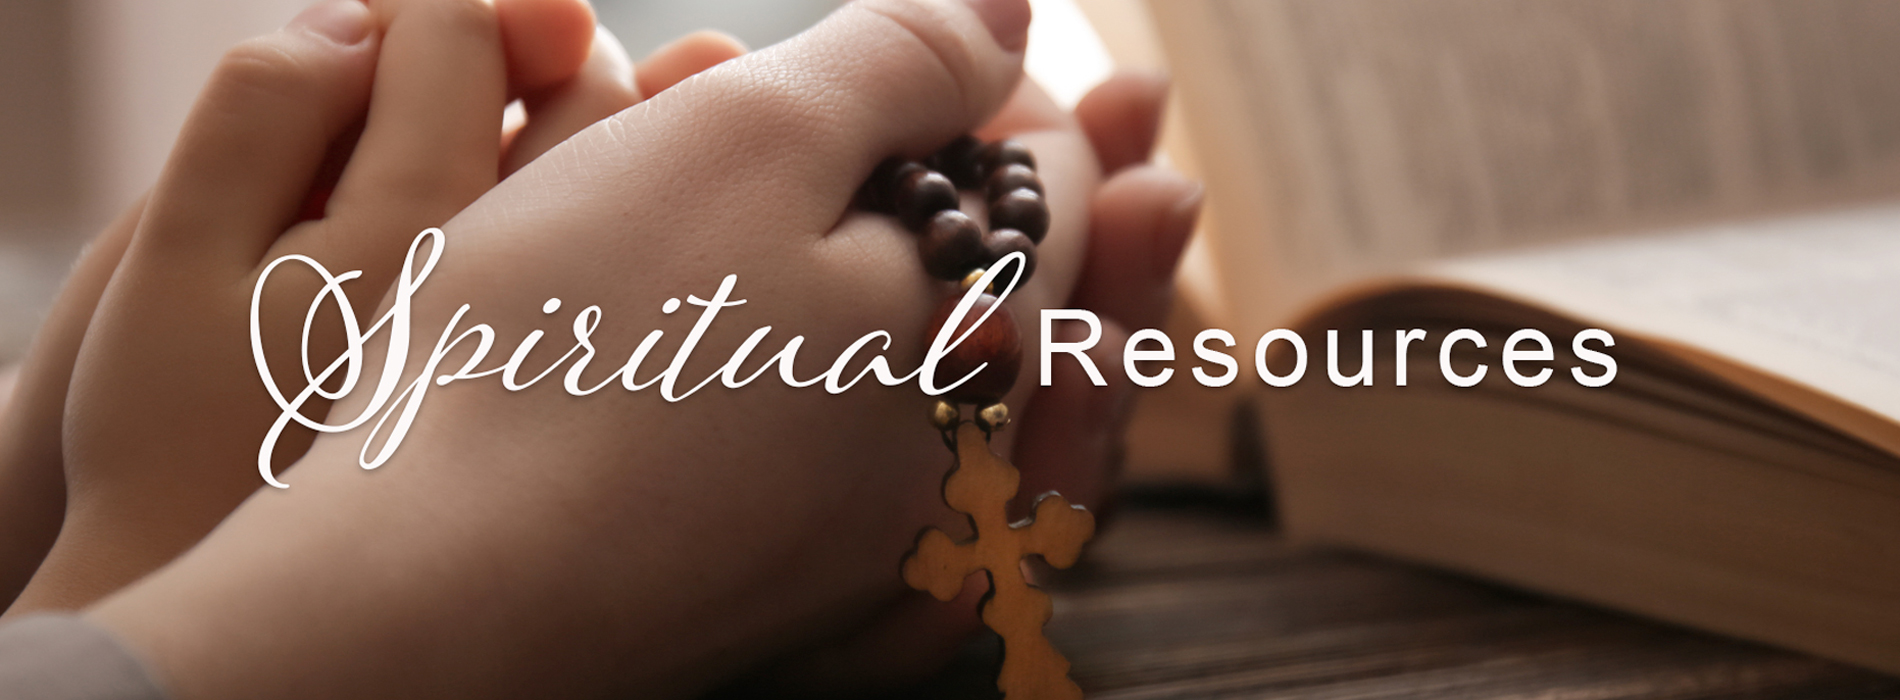 EWTN Spiritual Resources